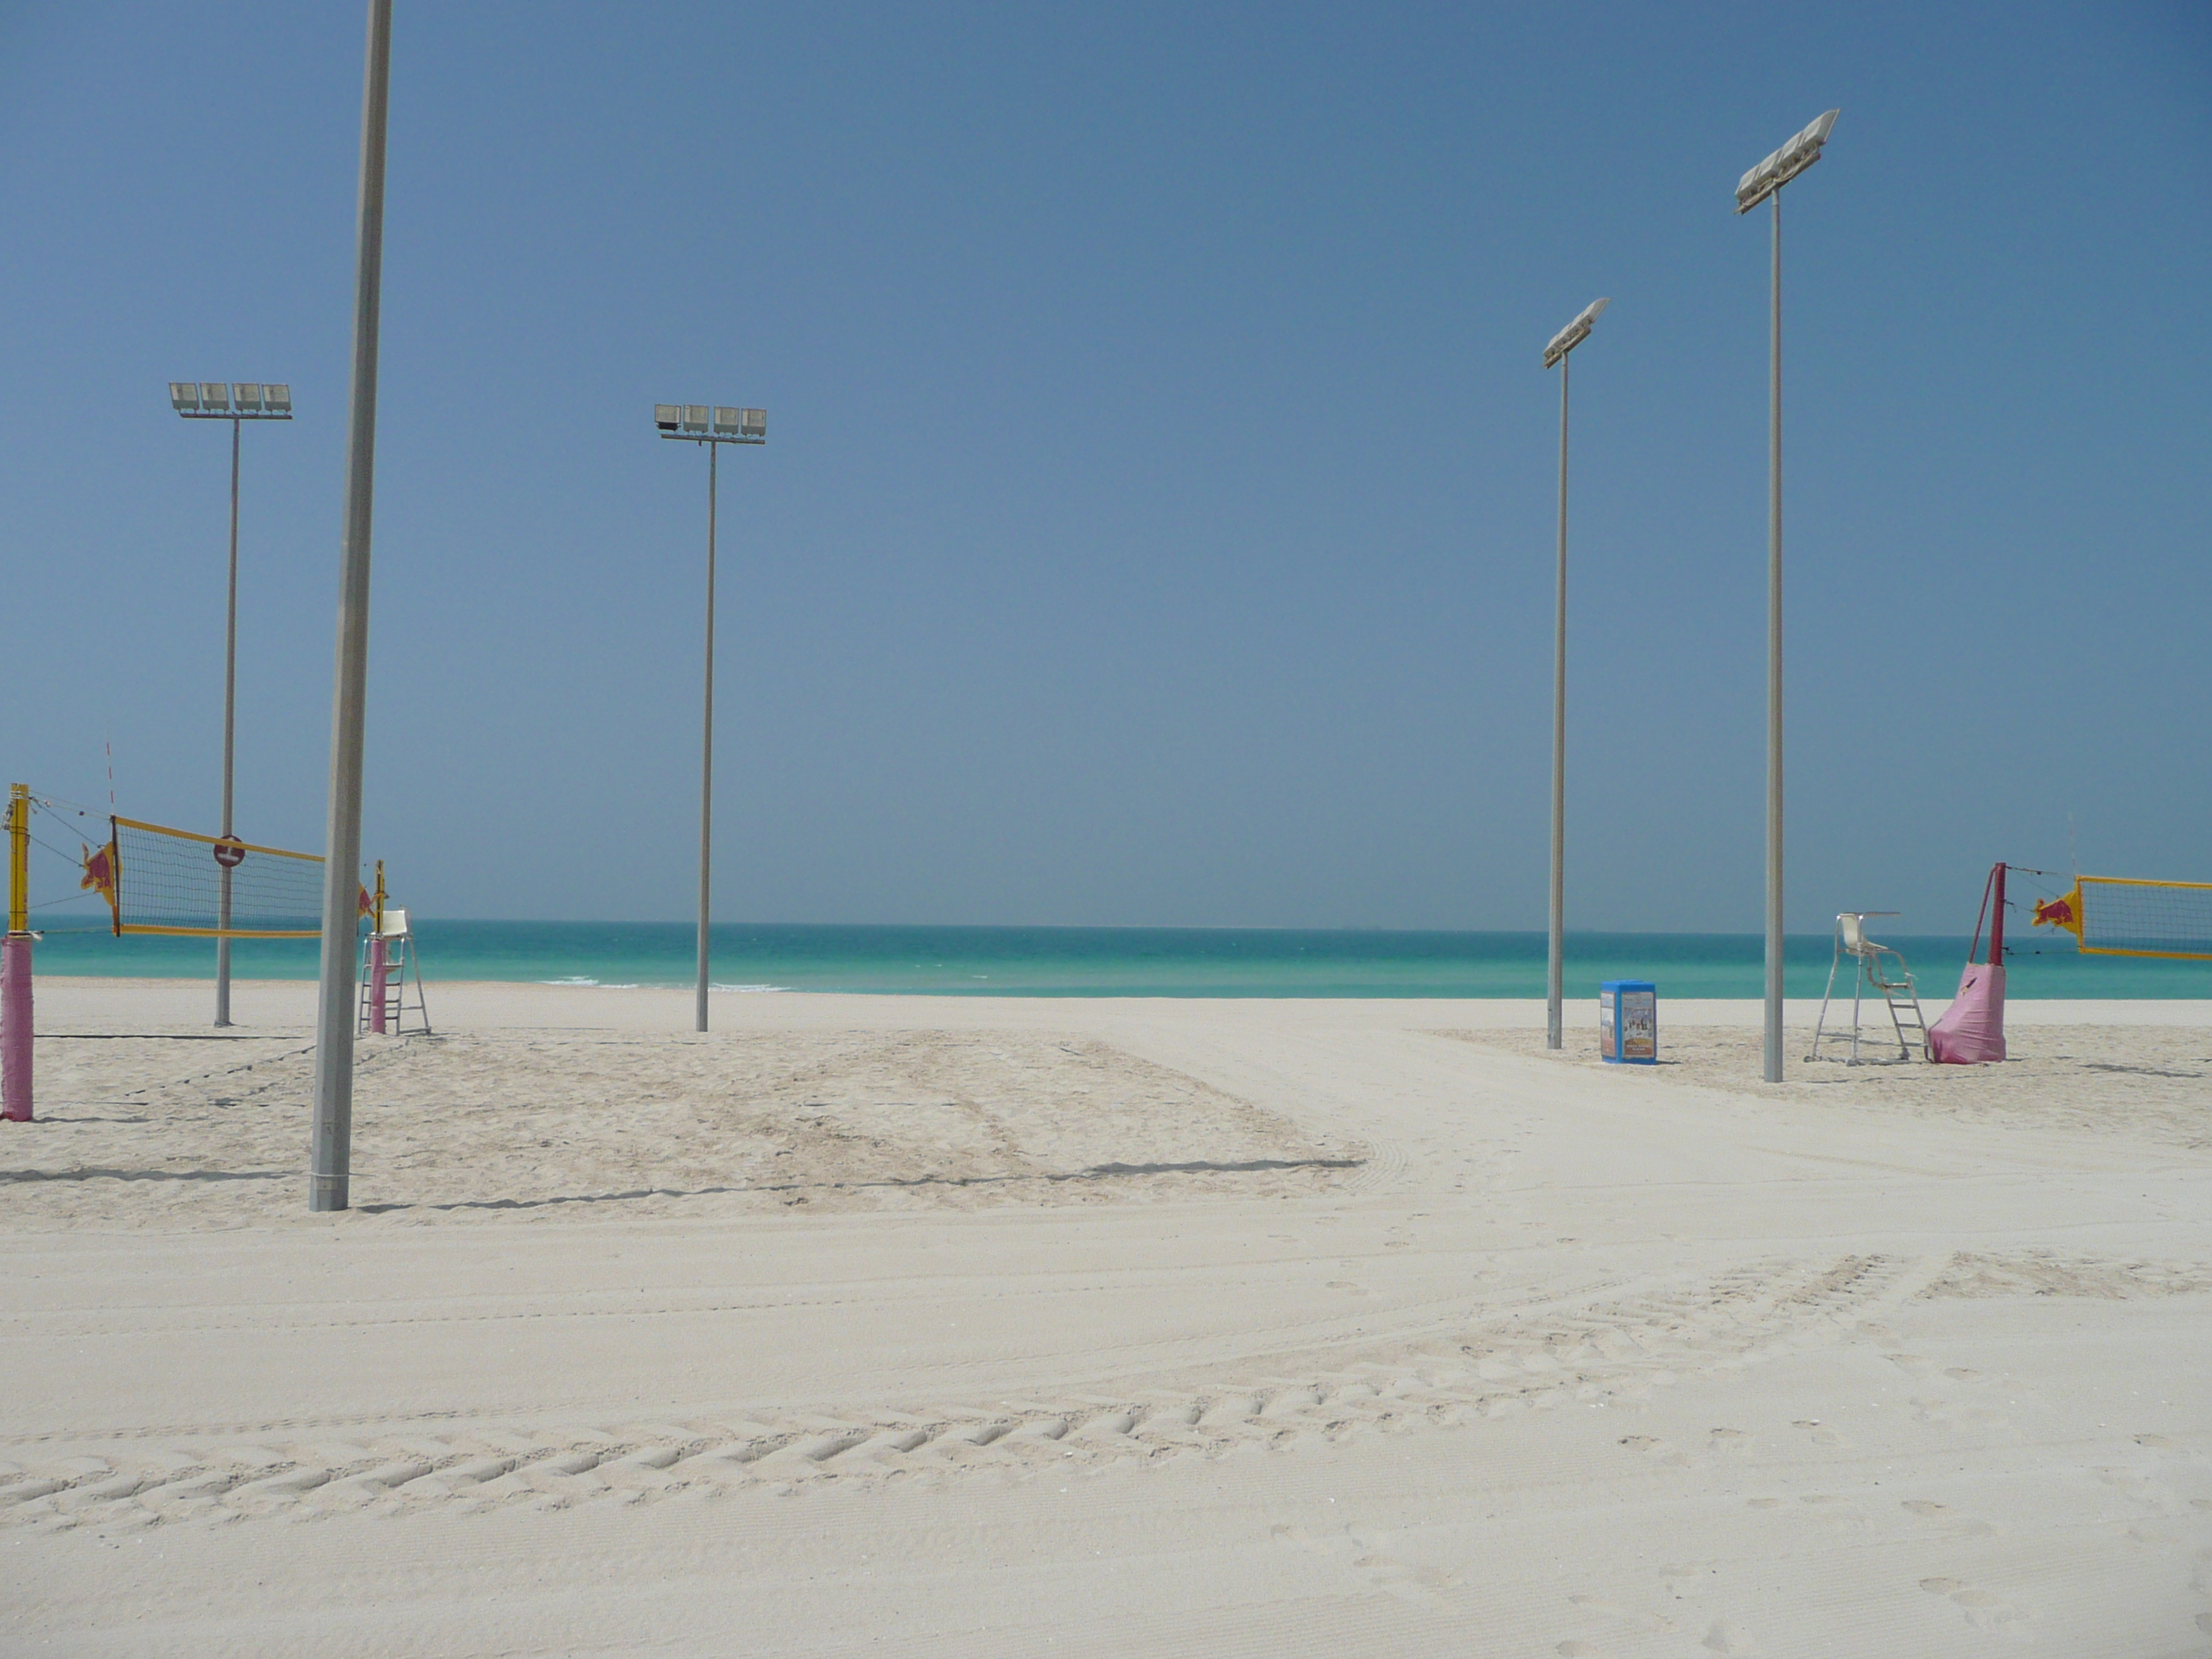 File:Volleyball courts on Jumeirah Beach.jpg - Wikimedia ...